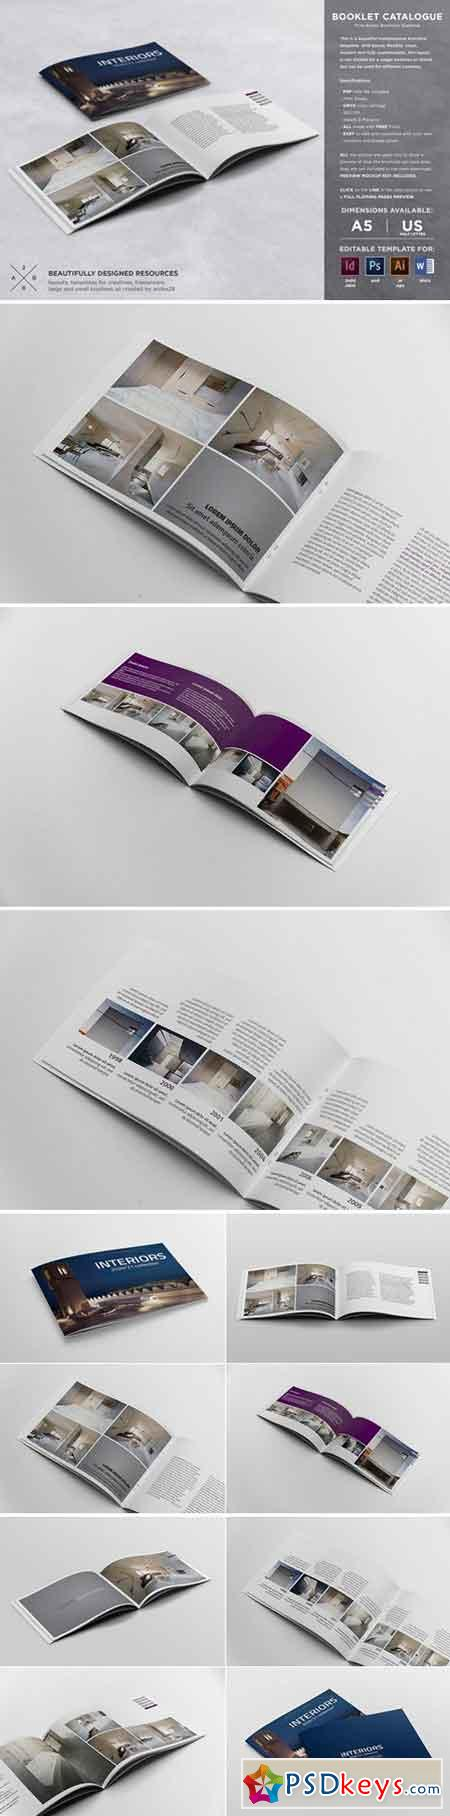 Booklet Catalogue Template 886053